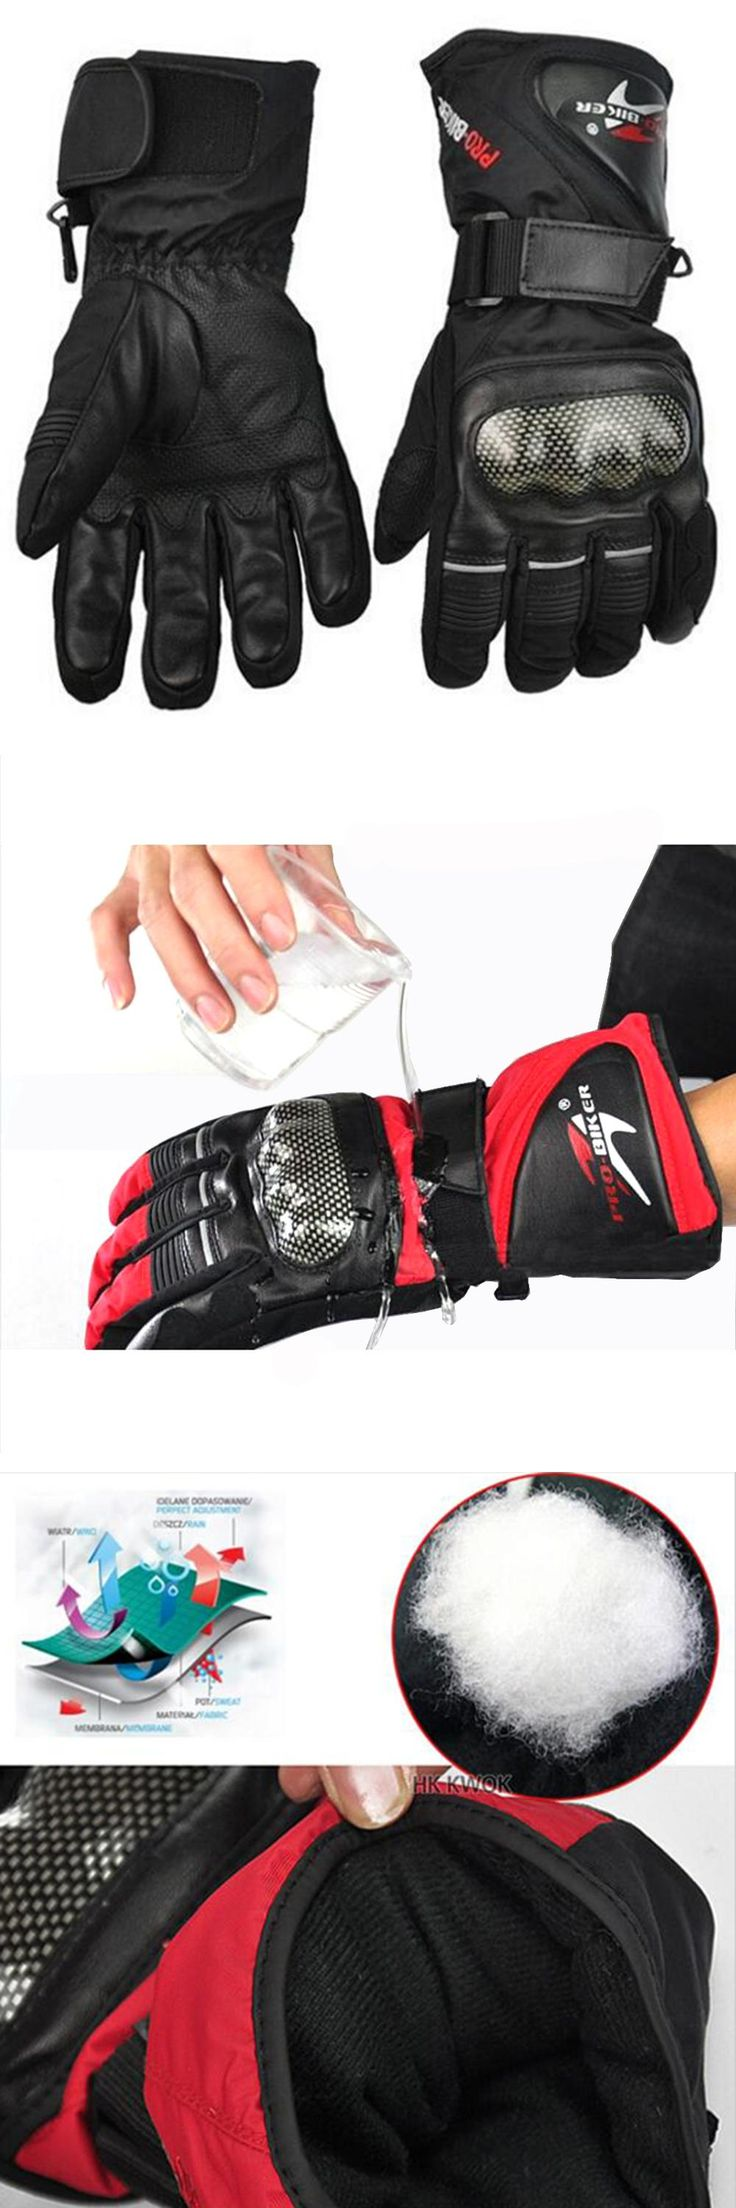 Japanese leather motorcycle gloves -  Visit To Buy Leather Gloves Motorbike Motorcycle Gloves Winter Waterproof Windproof Protective Gear Sports